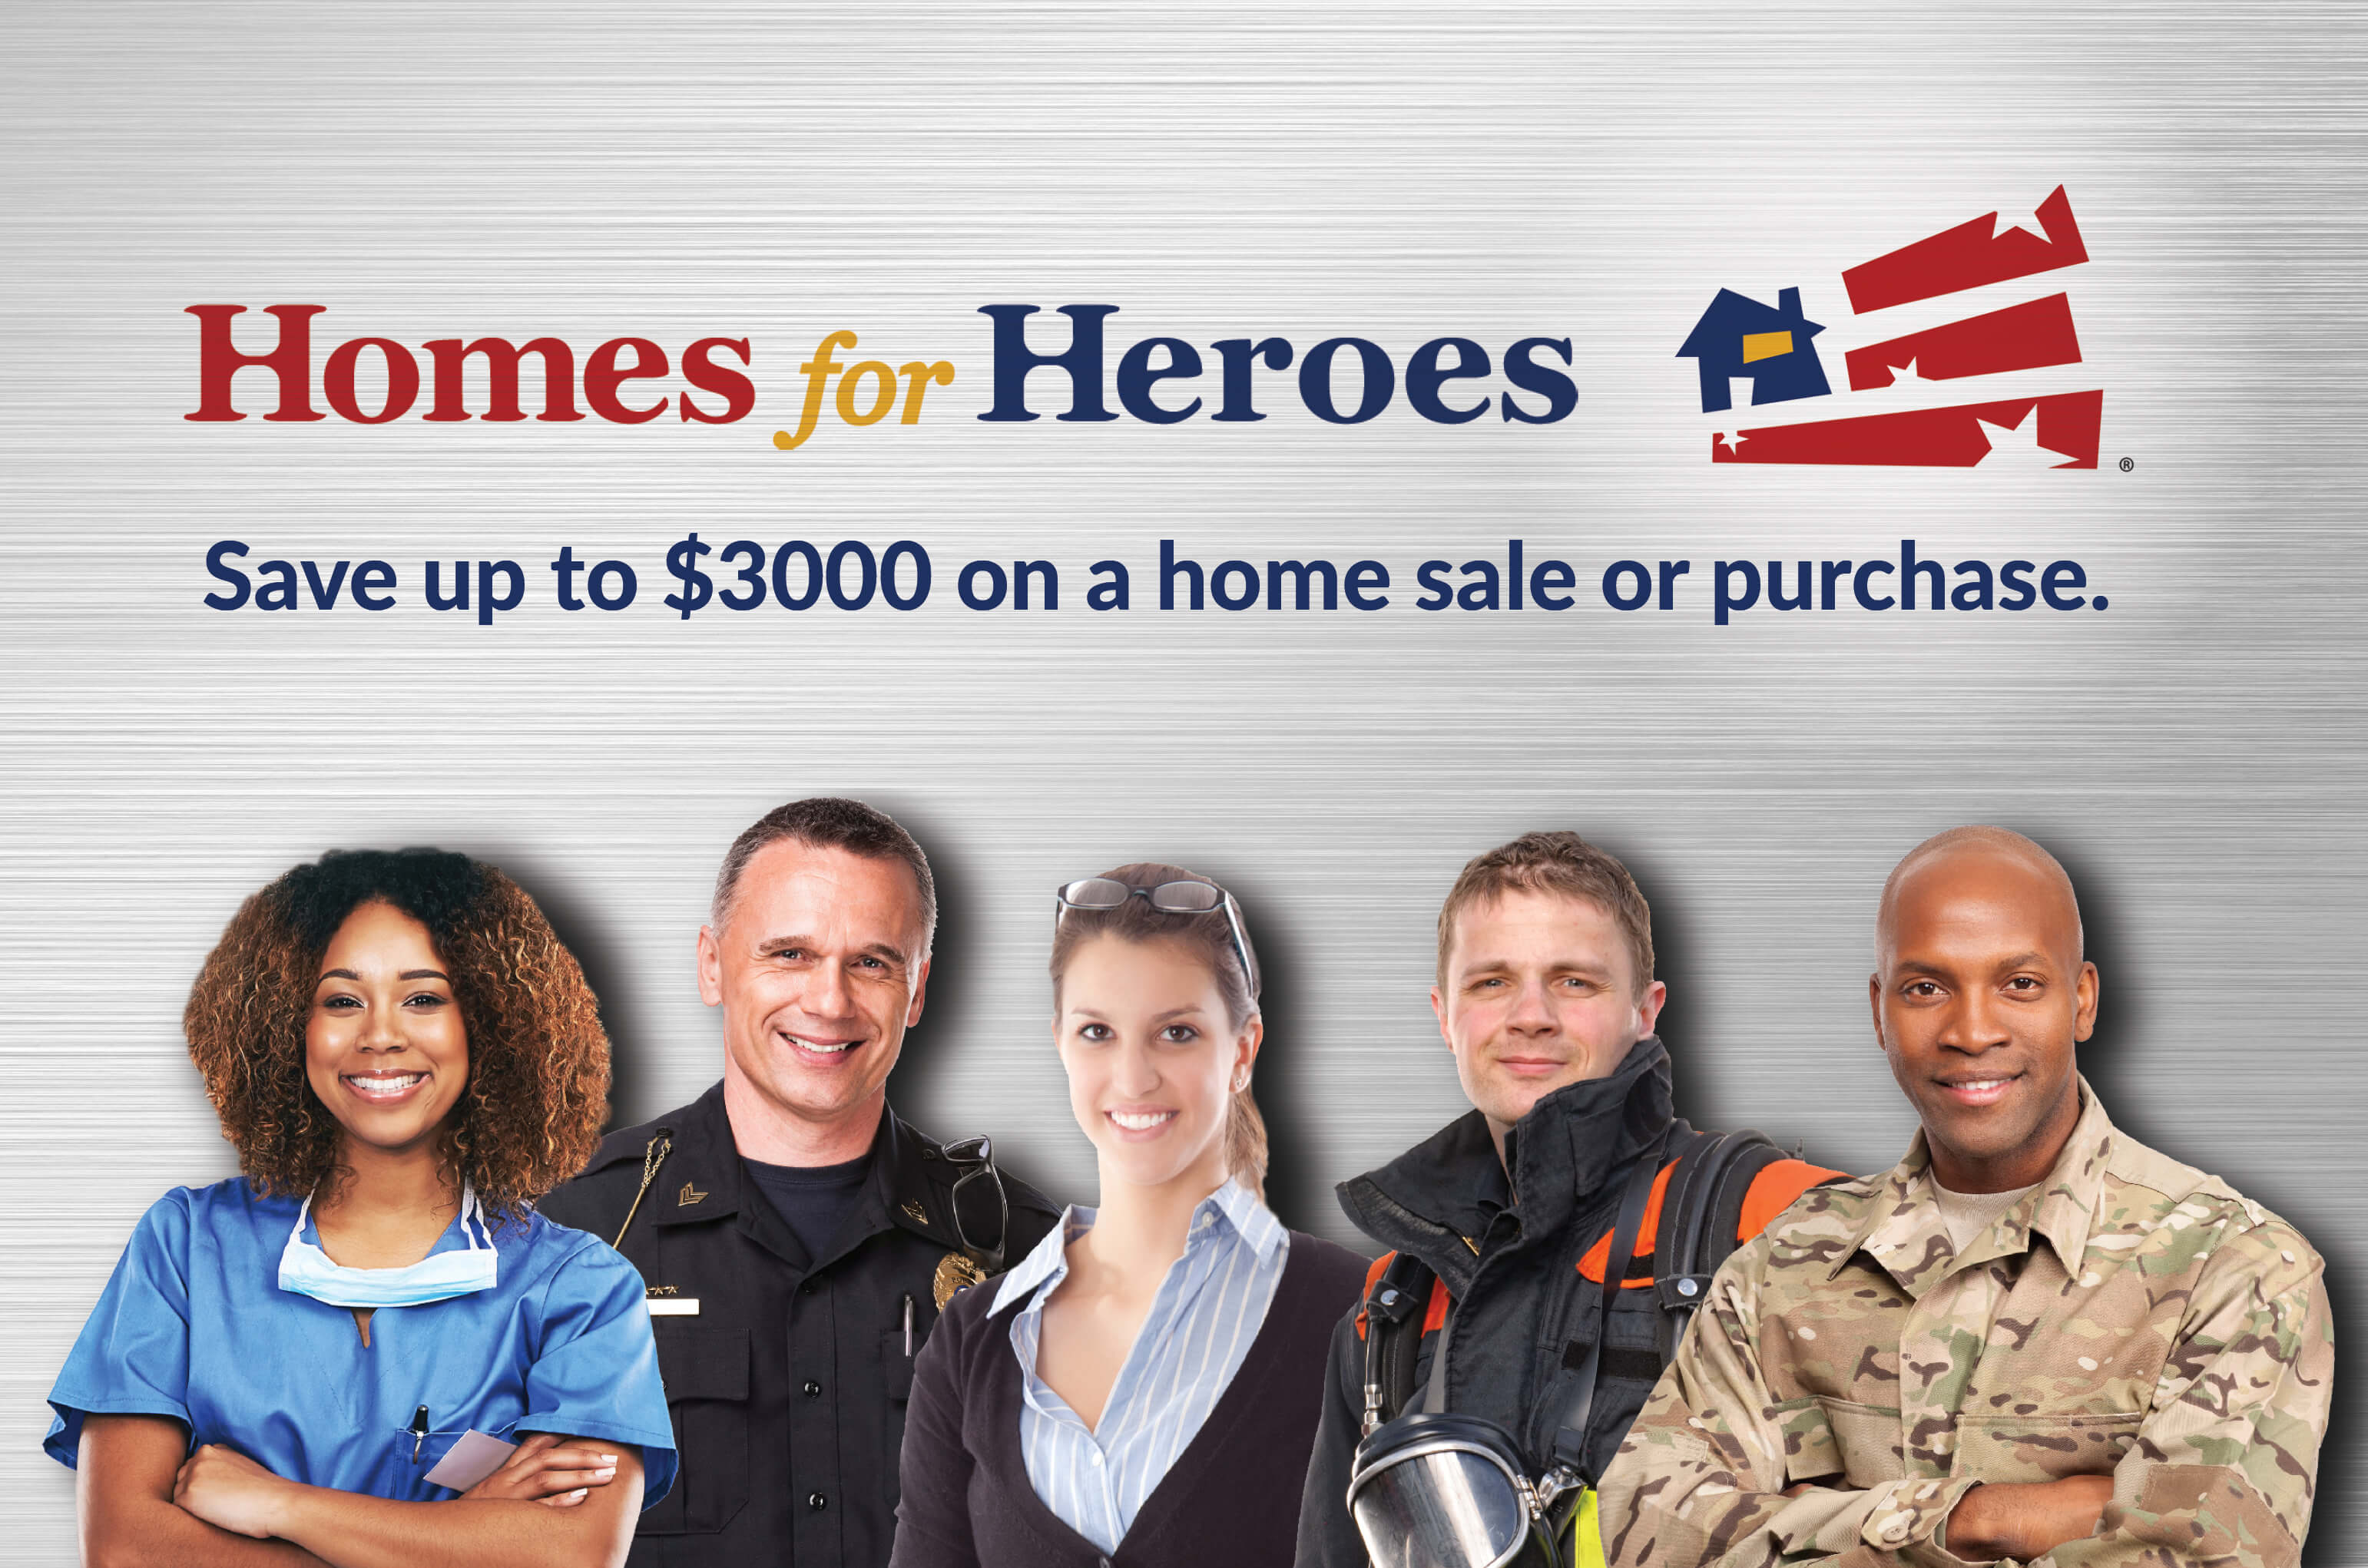 Homes for Heroes